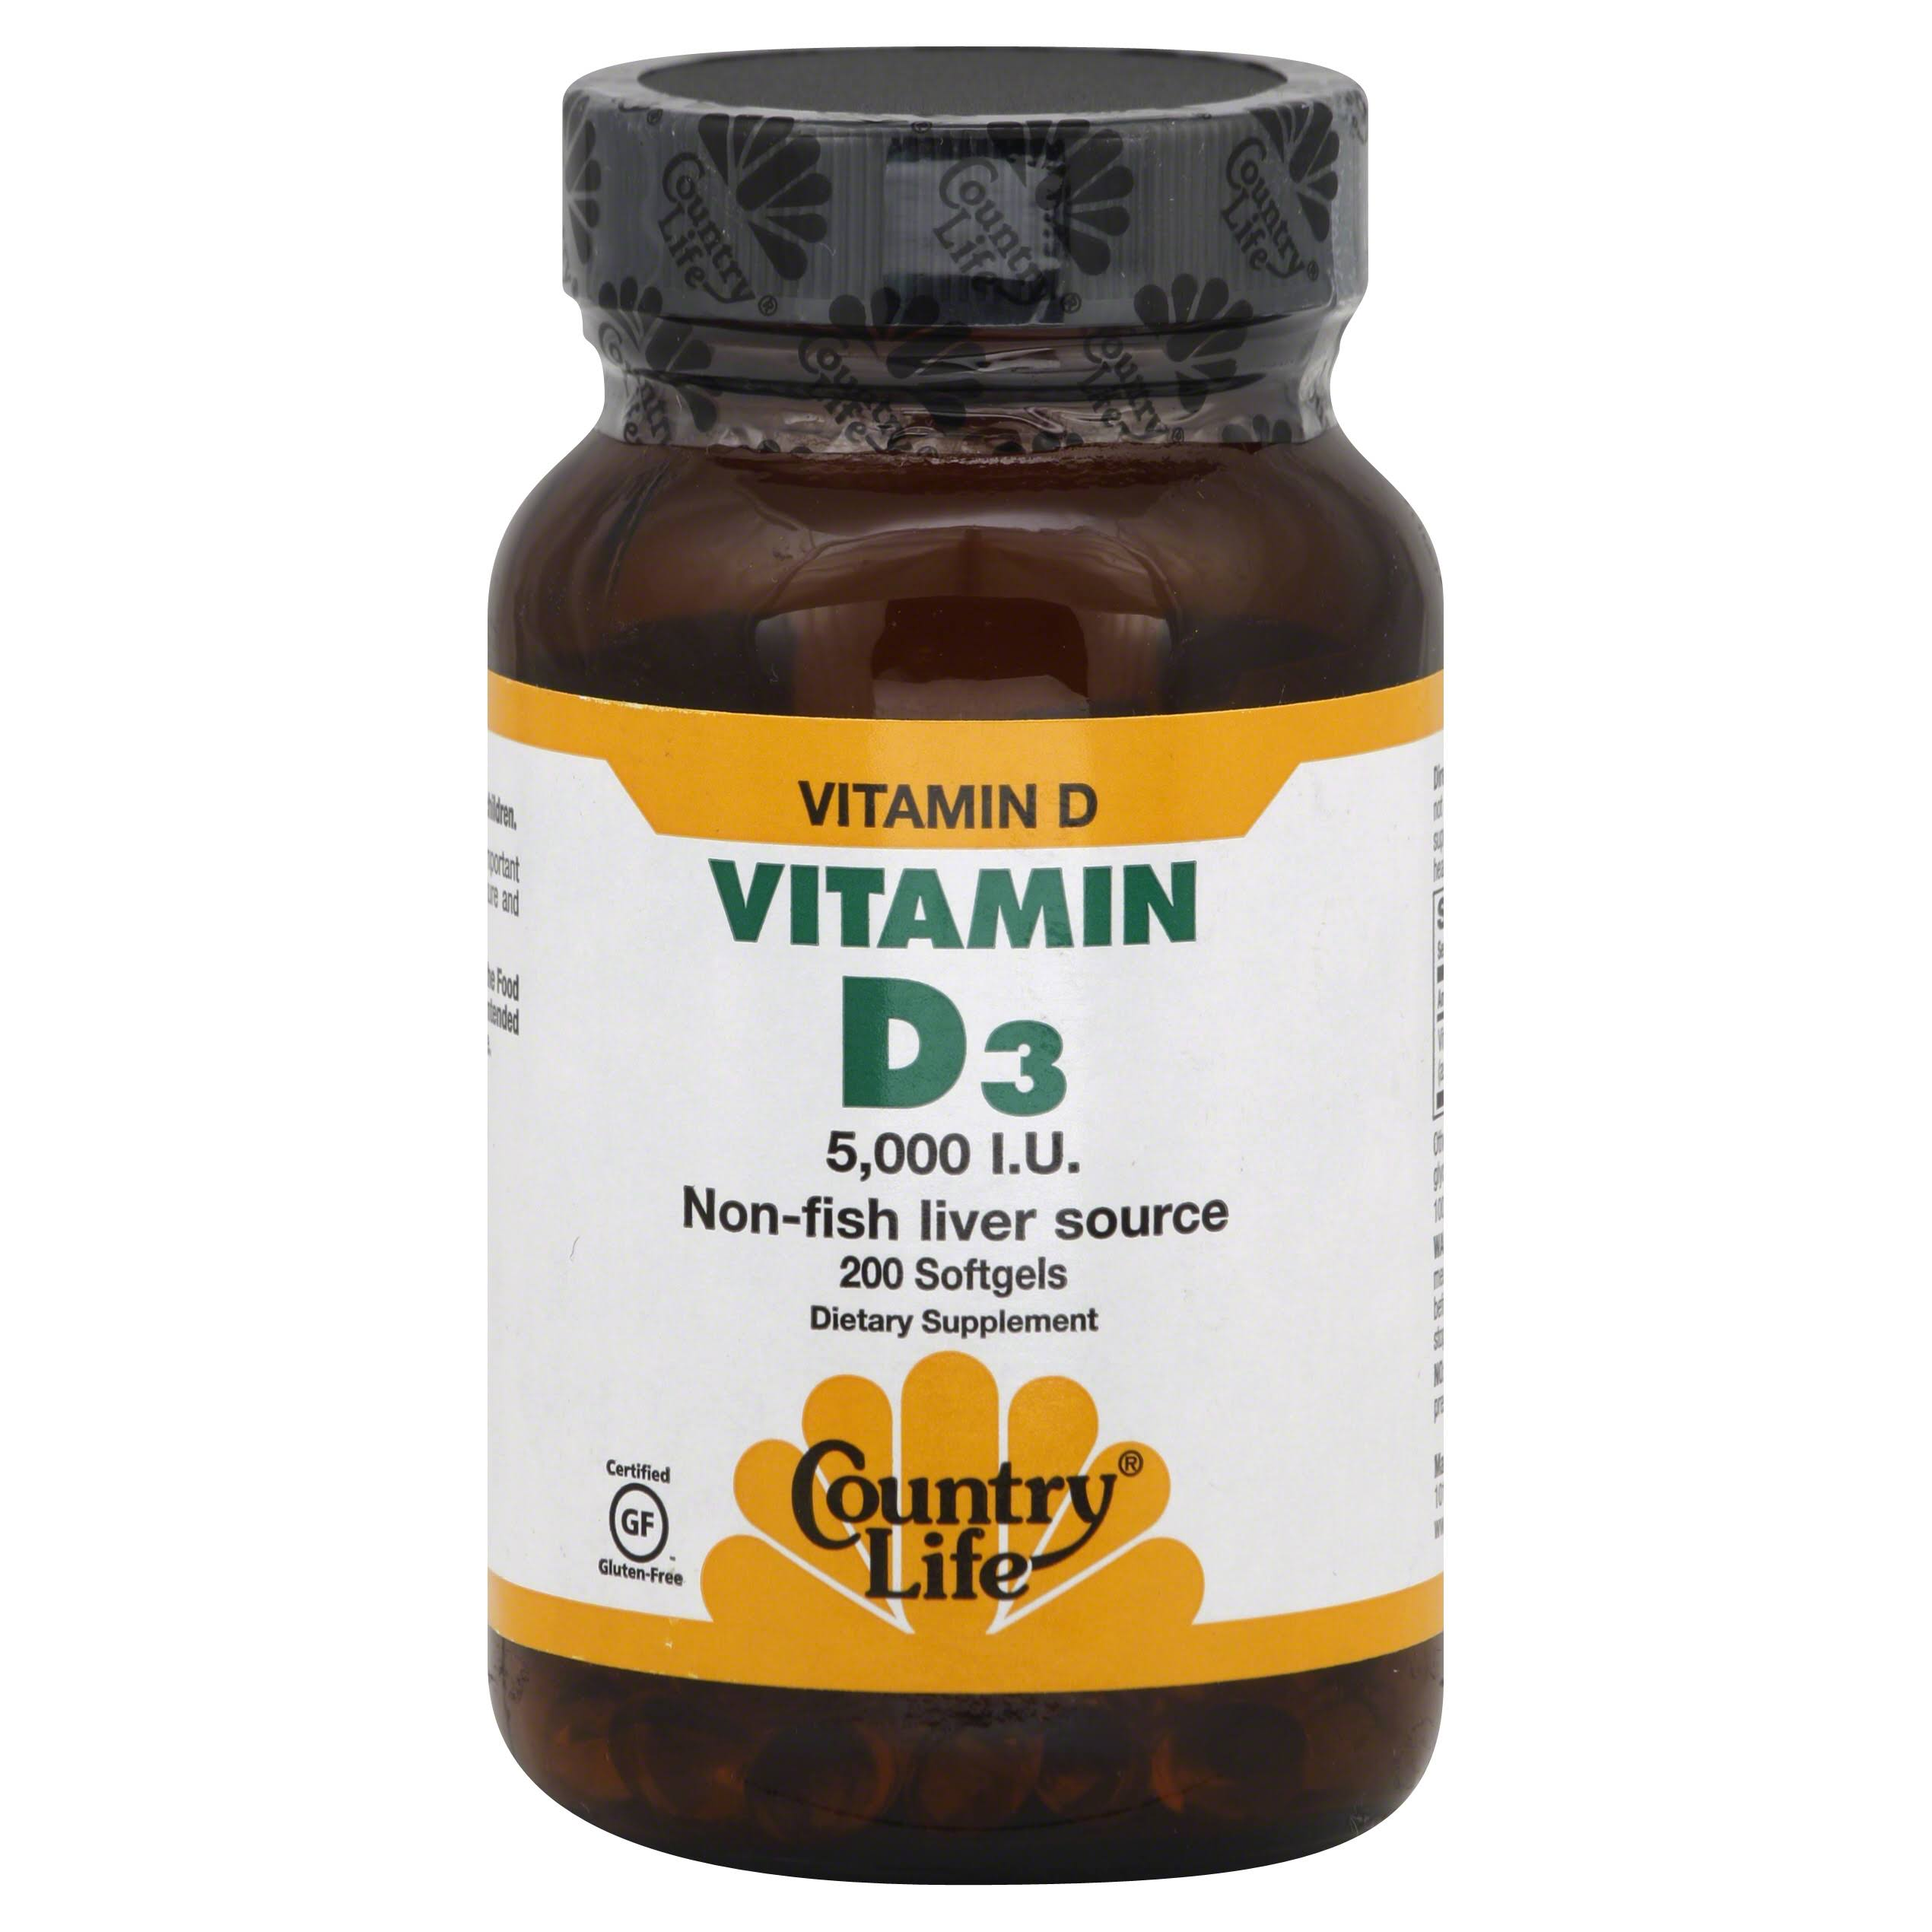 Country Life Vitamin D3 - 5000 IU, 200 Softgels